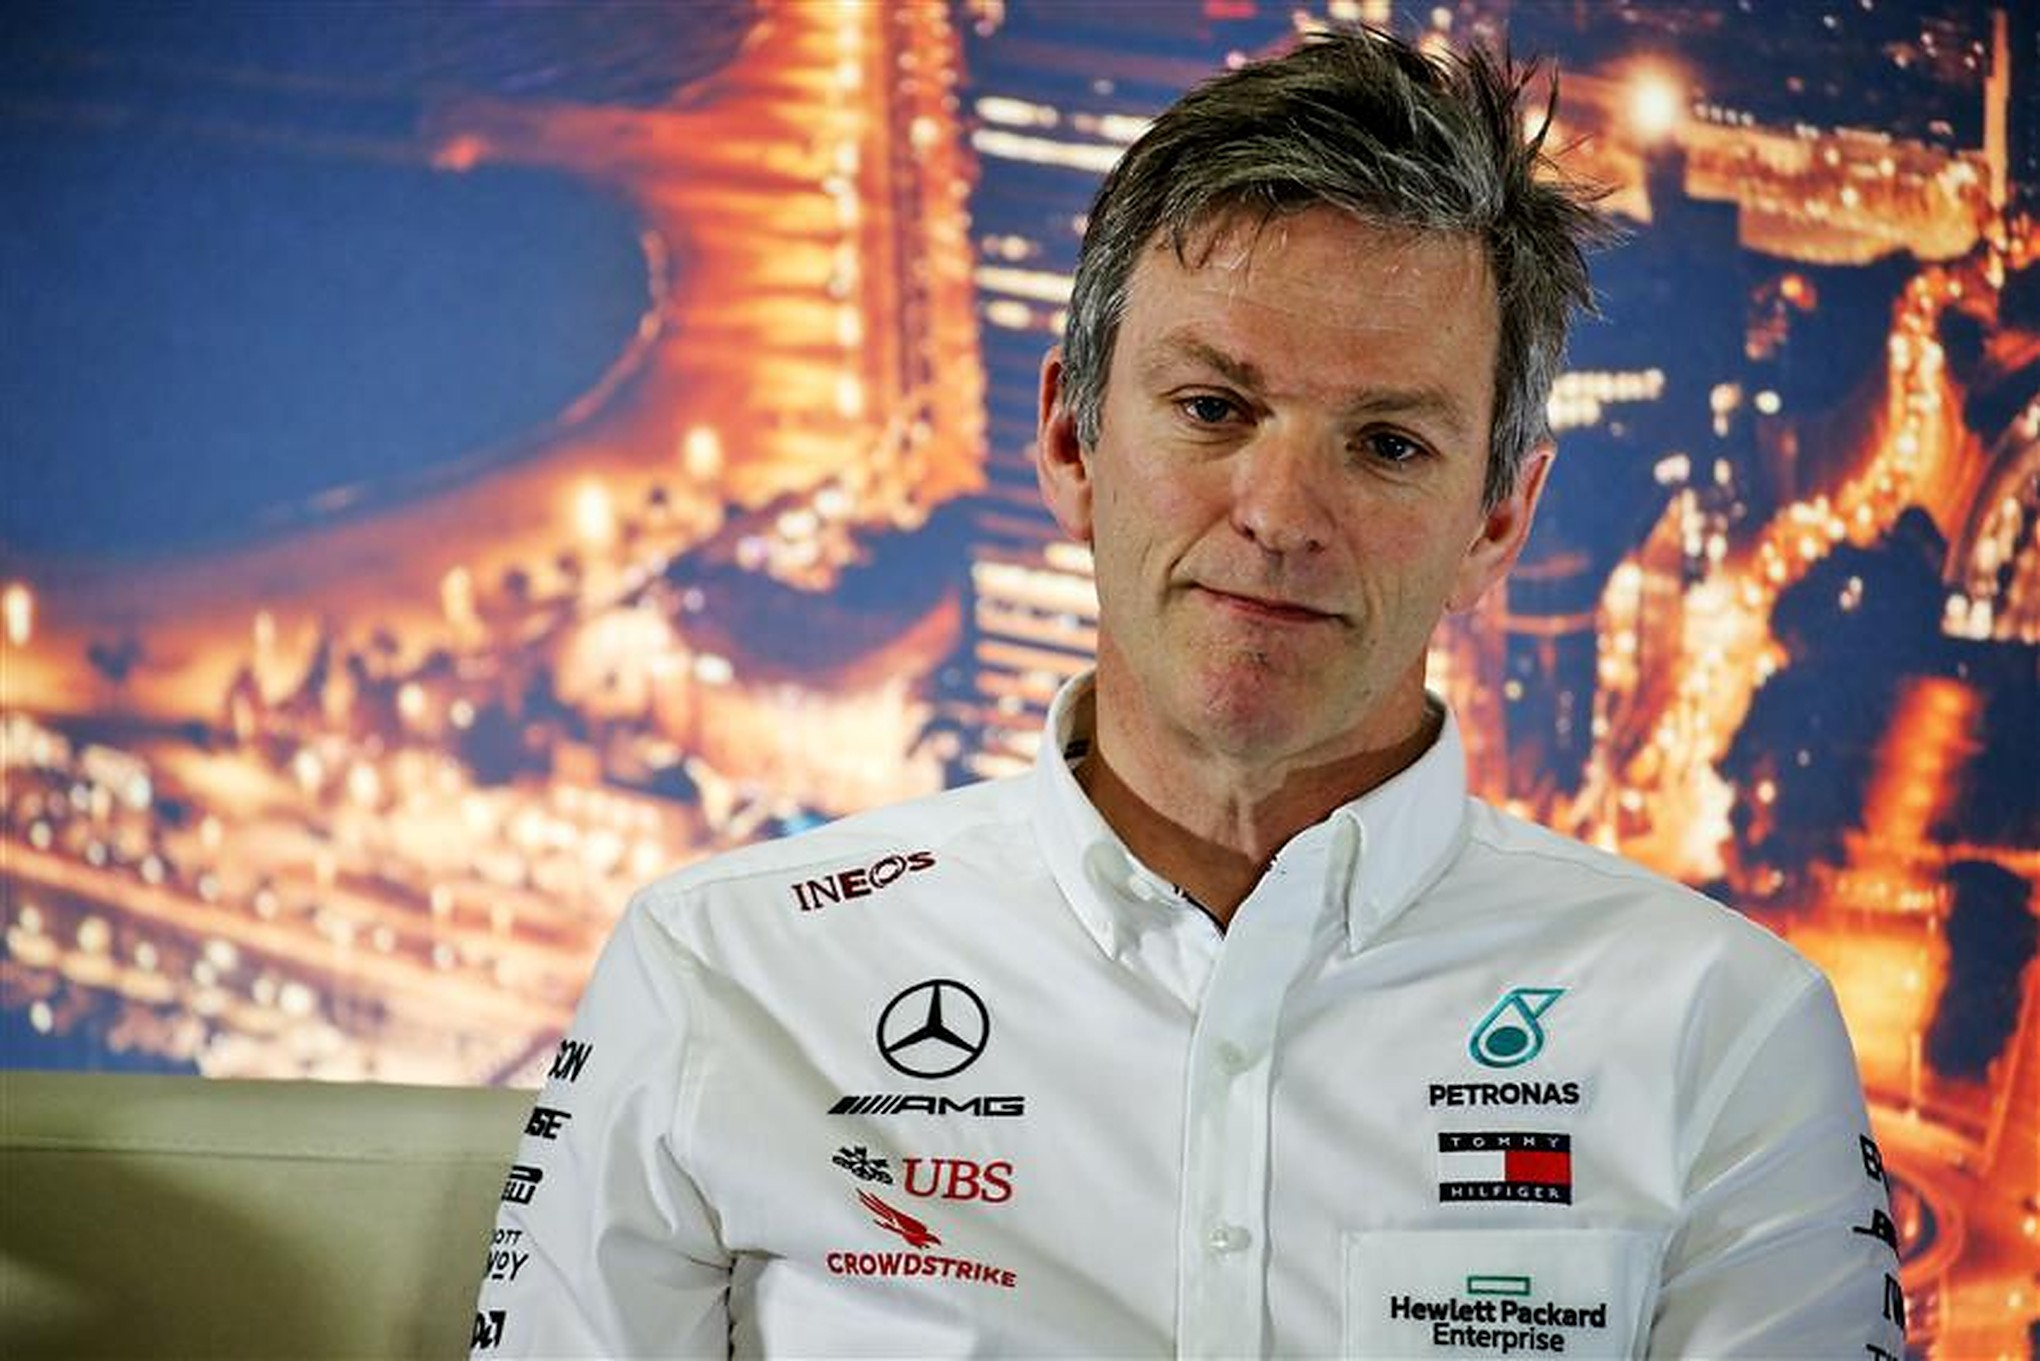 James Allison at Mercedes F1 Team - Formula1news.co.uk